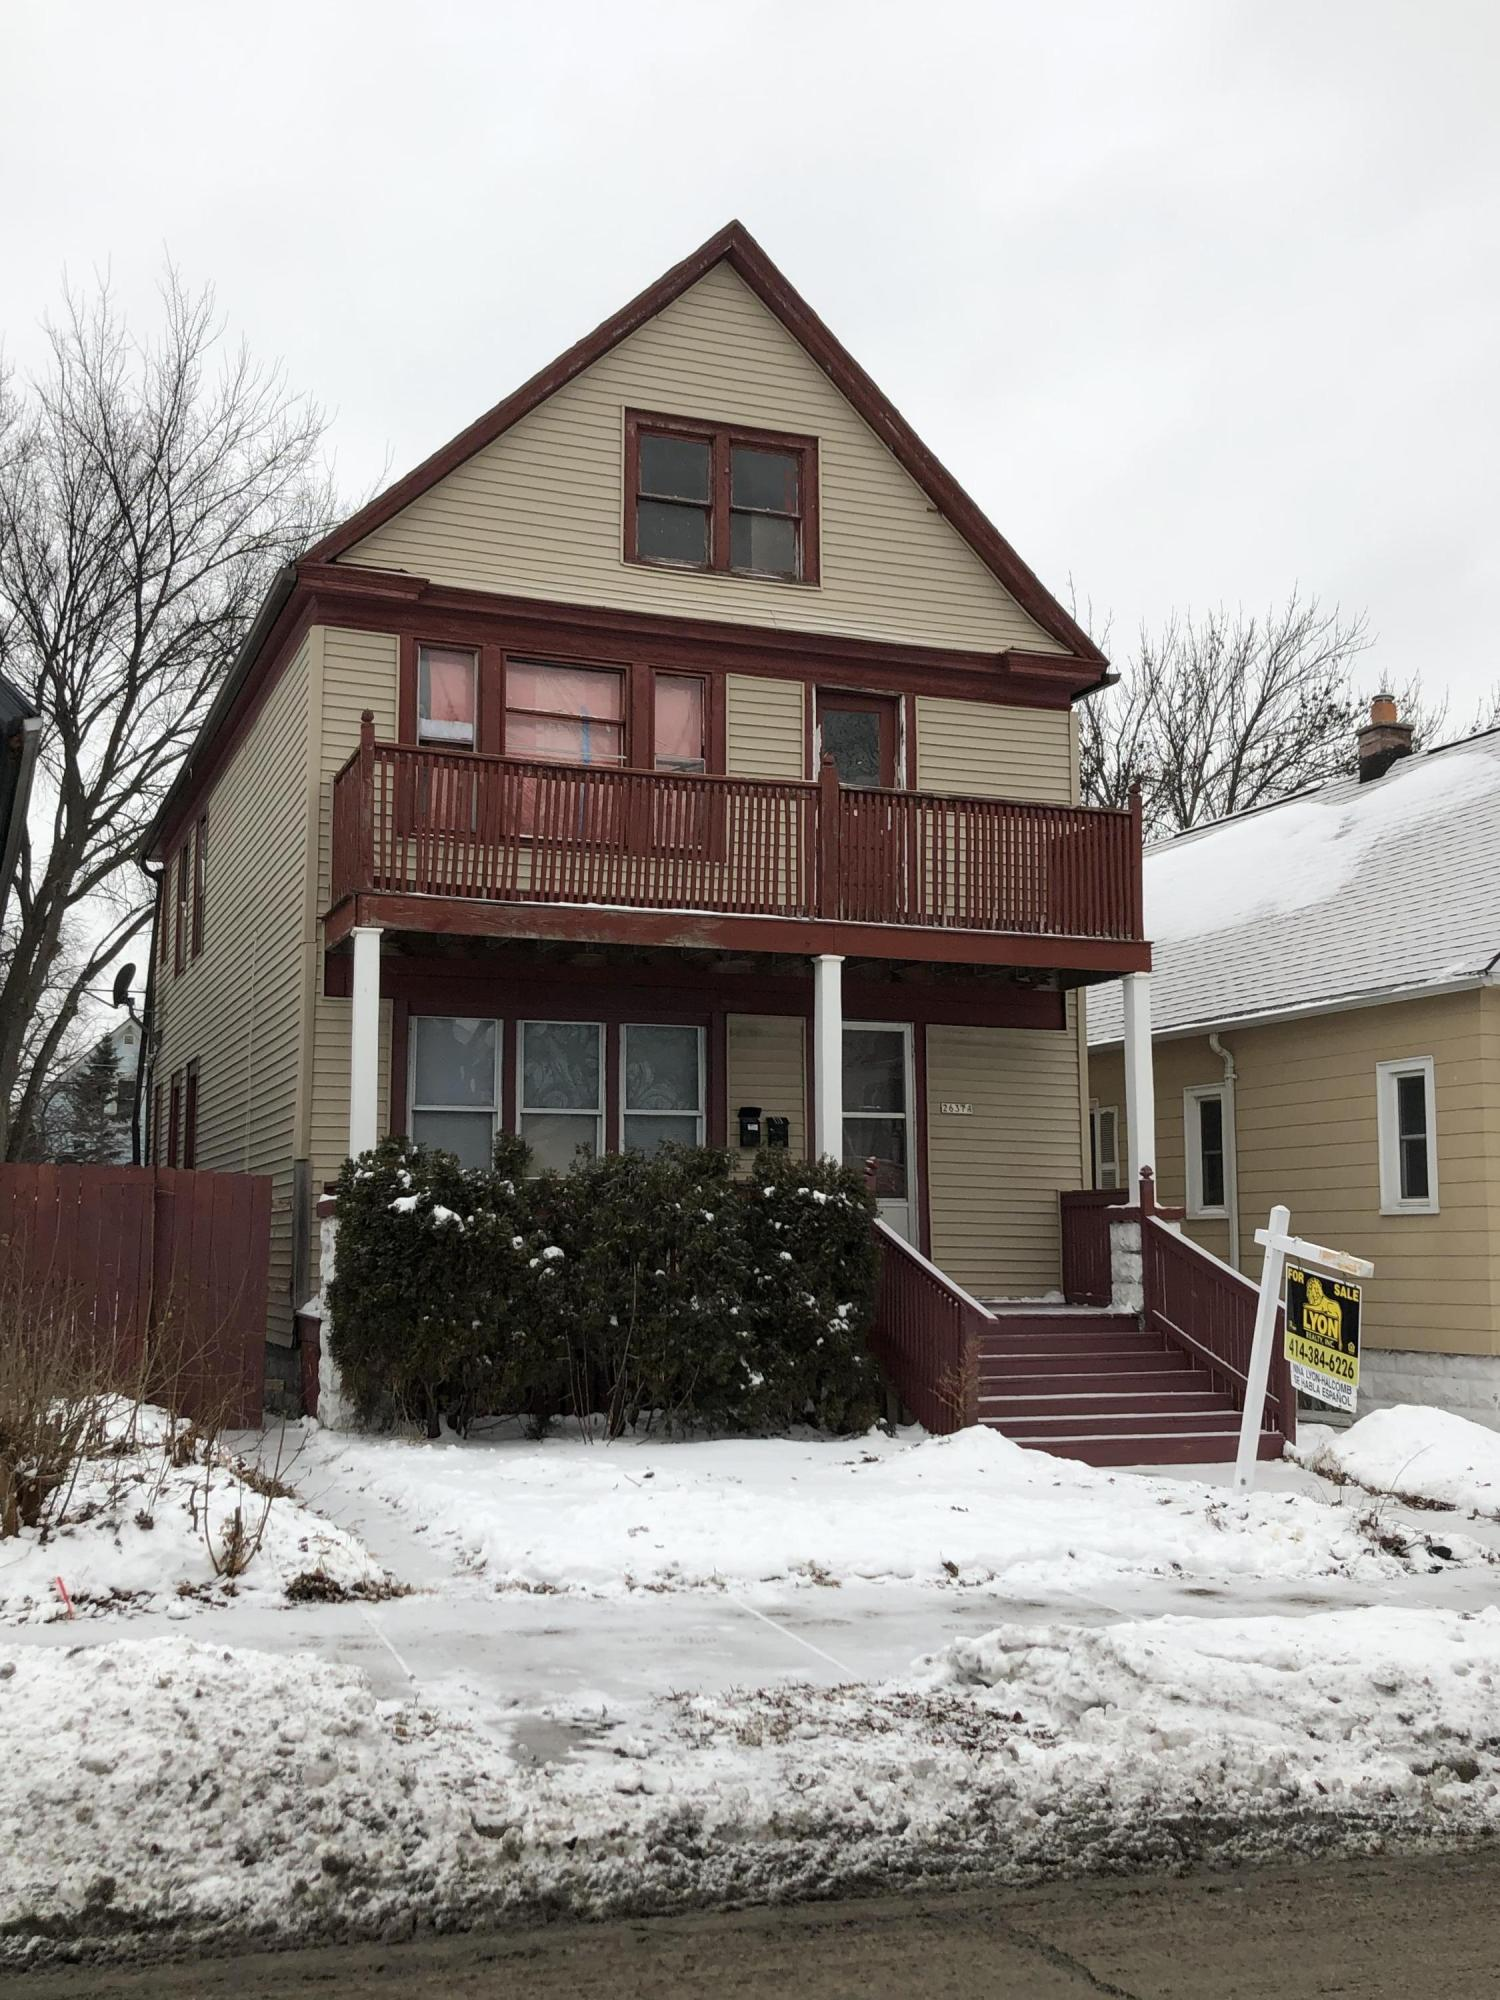 2637 9th PL, Milwaukee, Wisconsin 53215, 3 Bedrooms Bedrooms, 4 Rooms Rooms,1 BathroomBathrooms,Two-Family,For Sale,9th PL,1,1620483